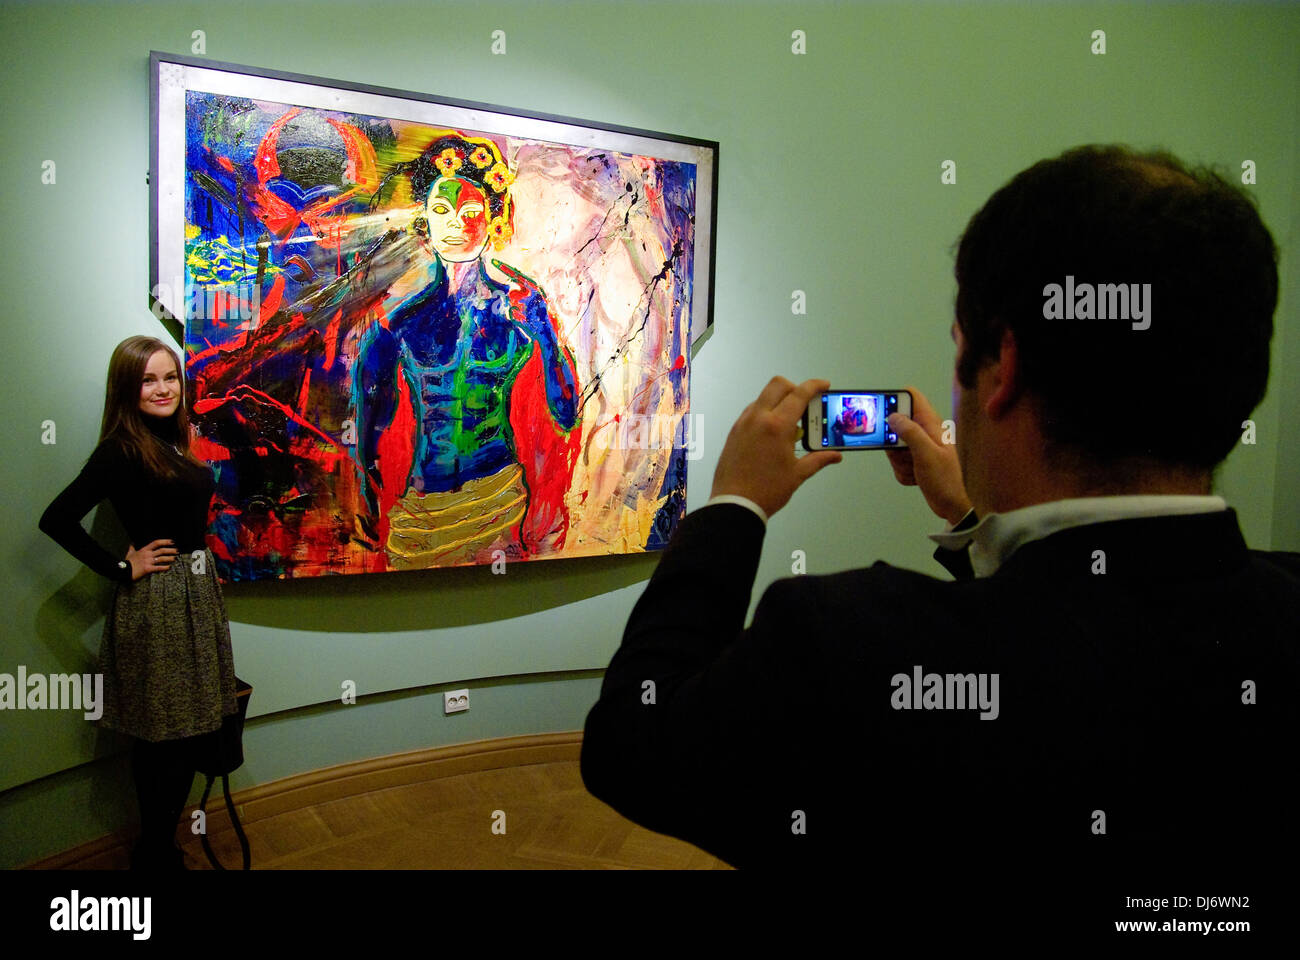 Russia. St. Petersburg. Exhibition of artwork by Sylvester Stallone in the Russian Museum. - Stock Image